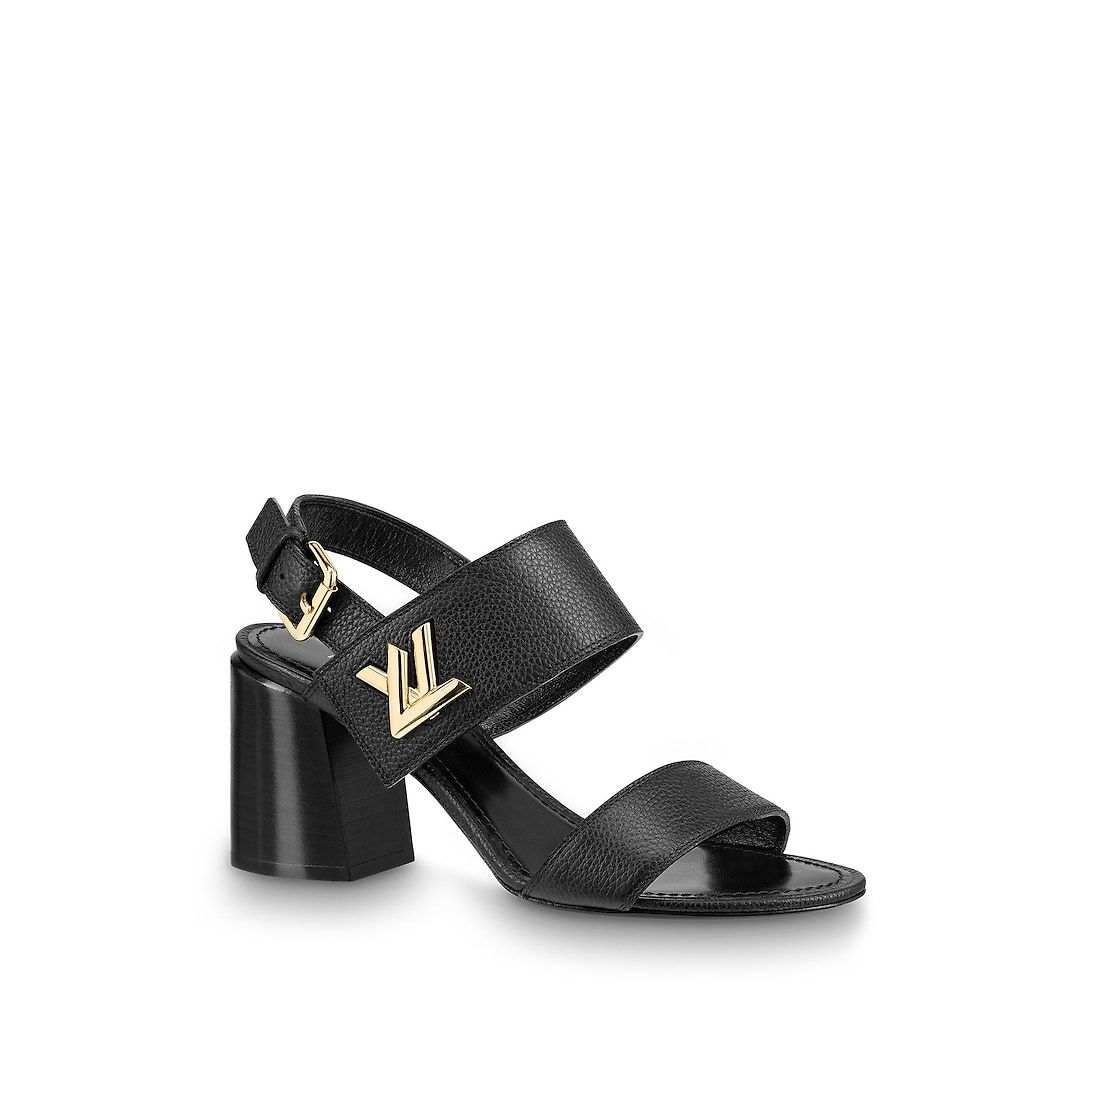 328cef5b800 View 1 - SHOES ALL COLLECTIONS Horizon Sandal